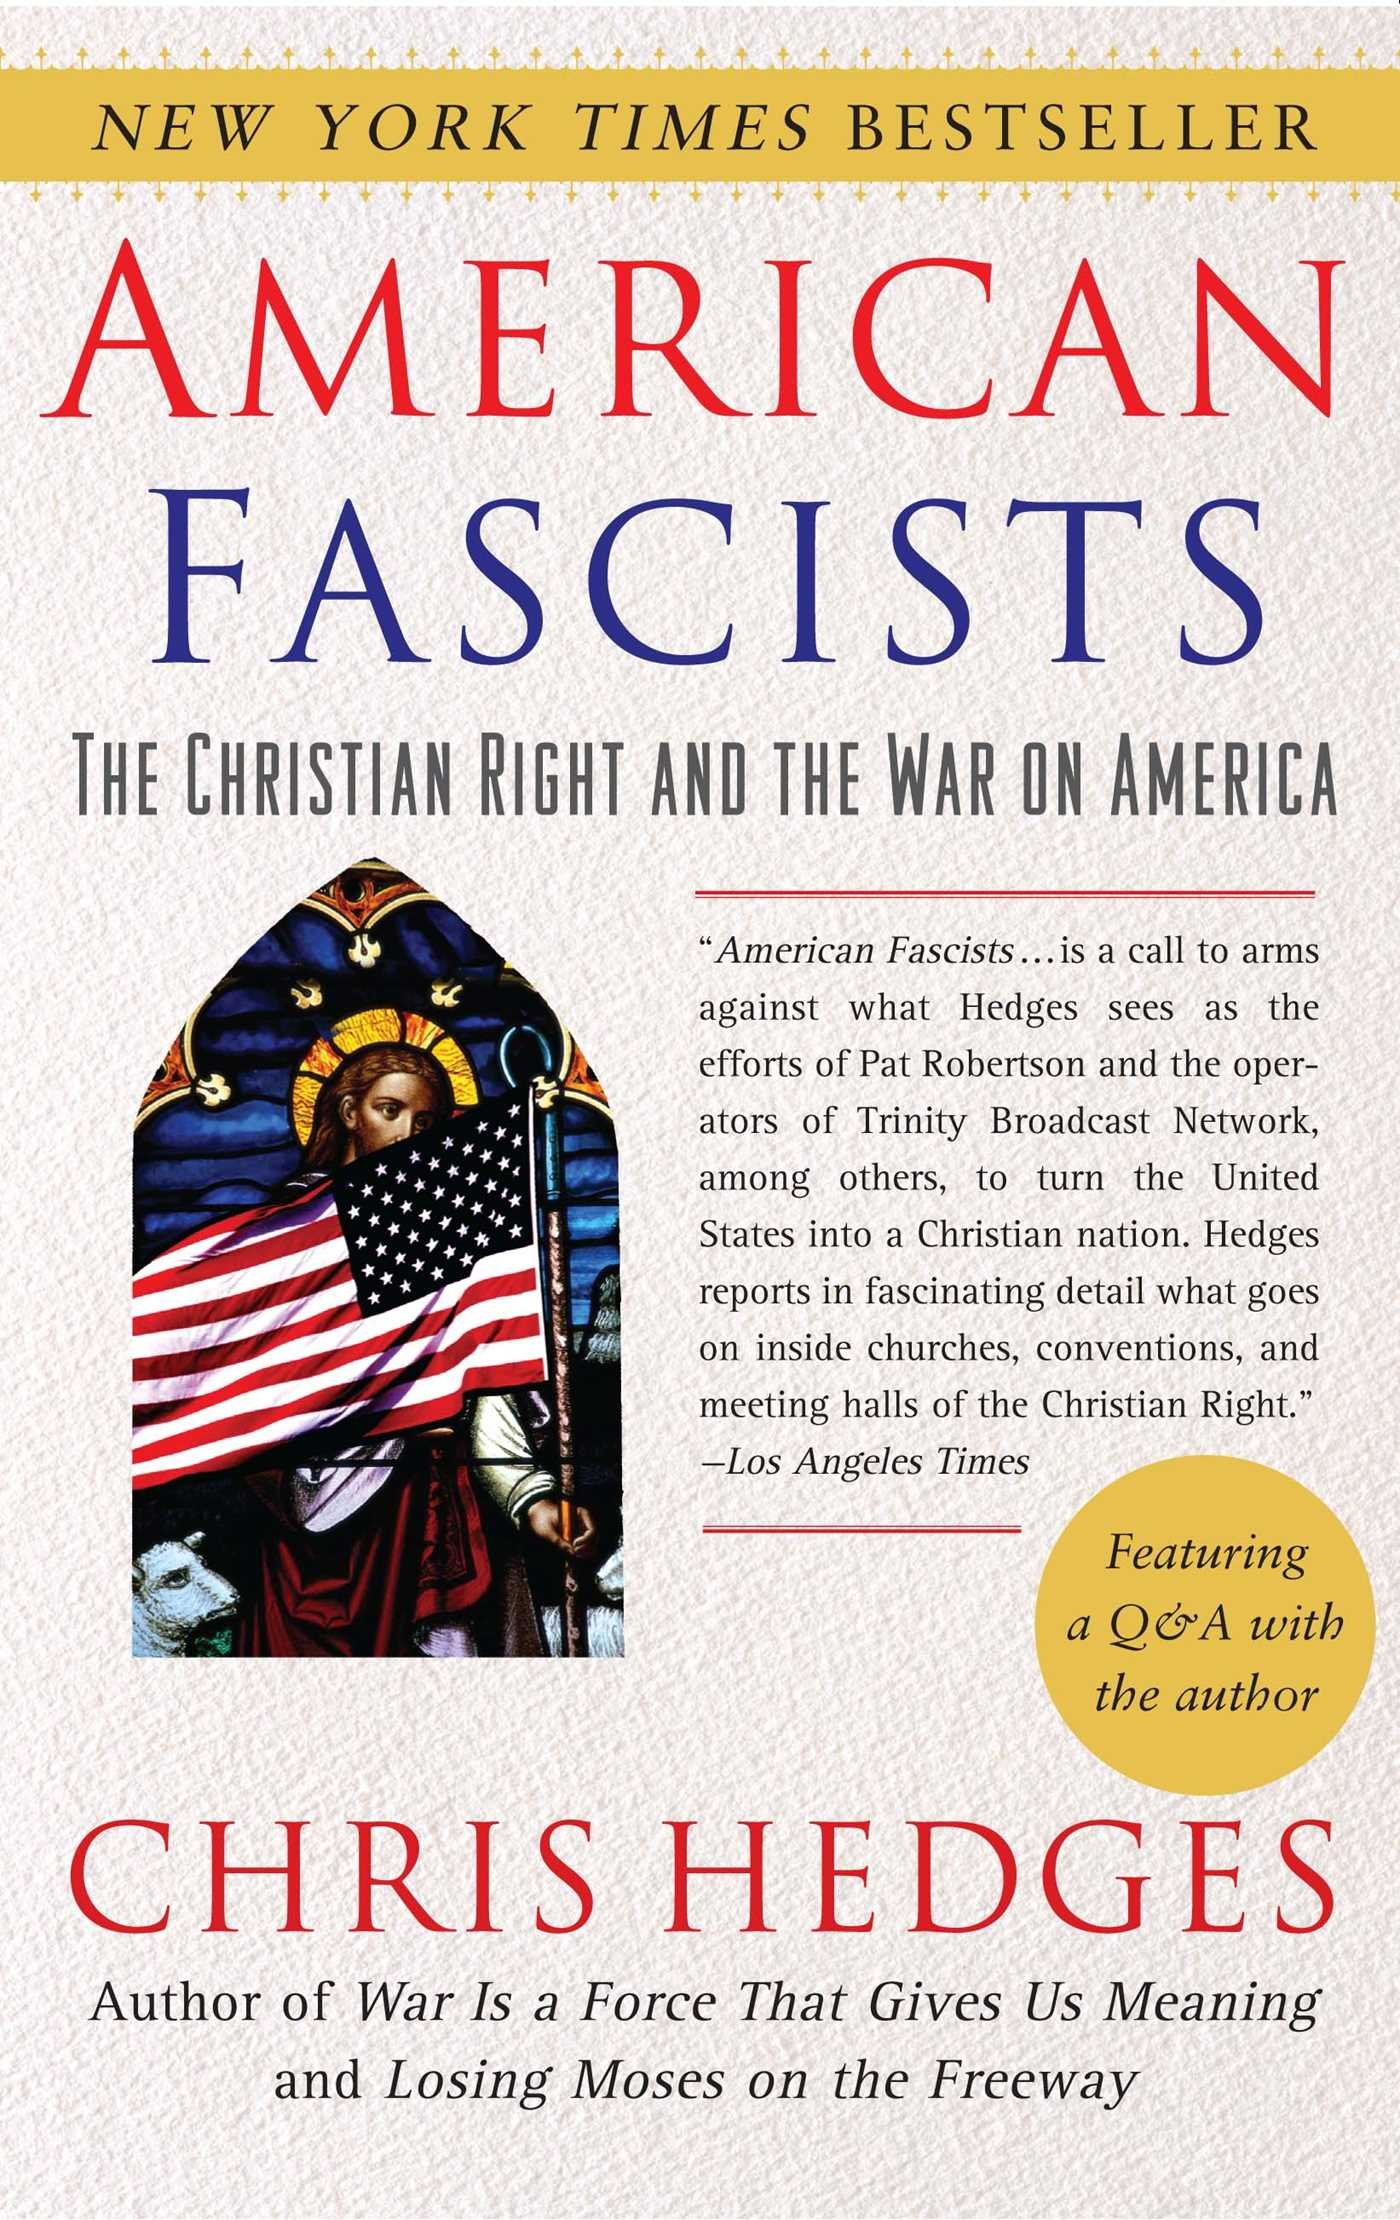 amazoncom american fascists the christian right and the war on america 9780743284462 chris hedges books - 57 Unique Wedding Vows Examples Impression